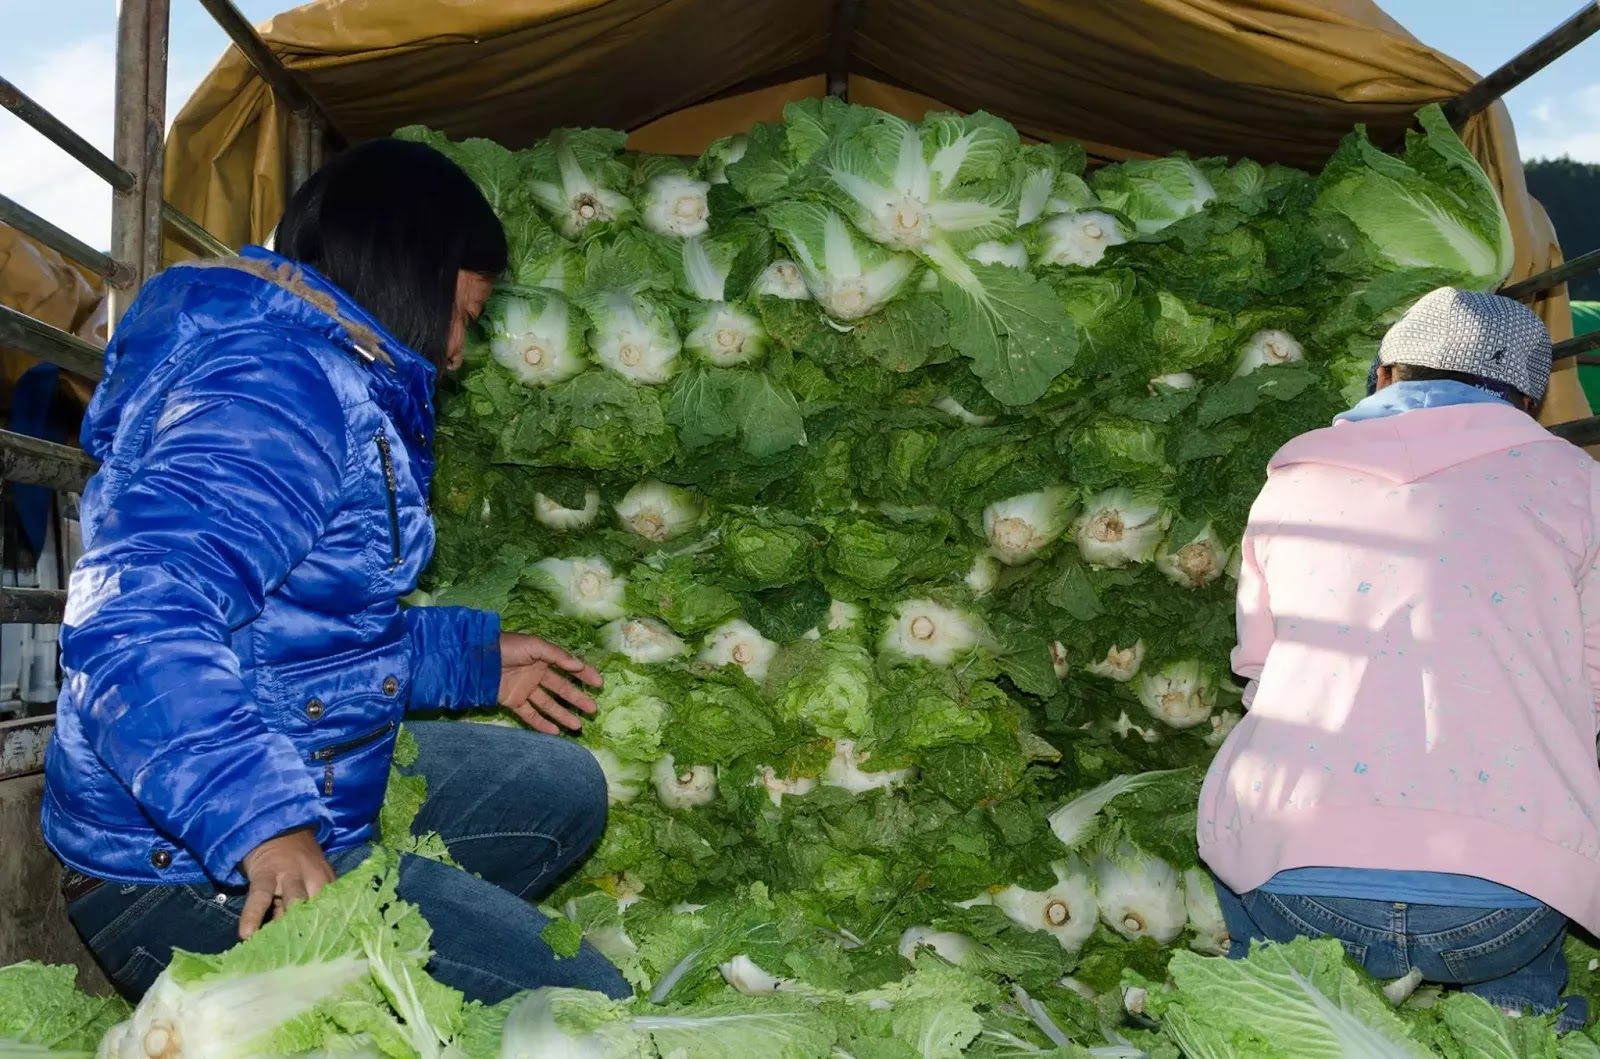 Vegetable Workers Lettuce Sorters Loaders Trading Post La Trinidad Benguet Cordillera Administrative Region Philippines